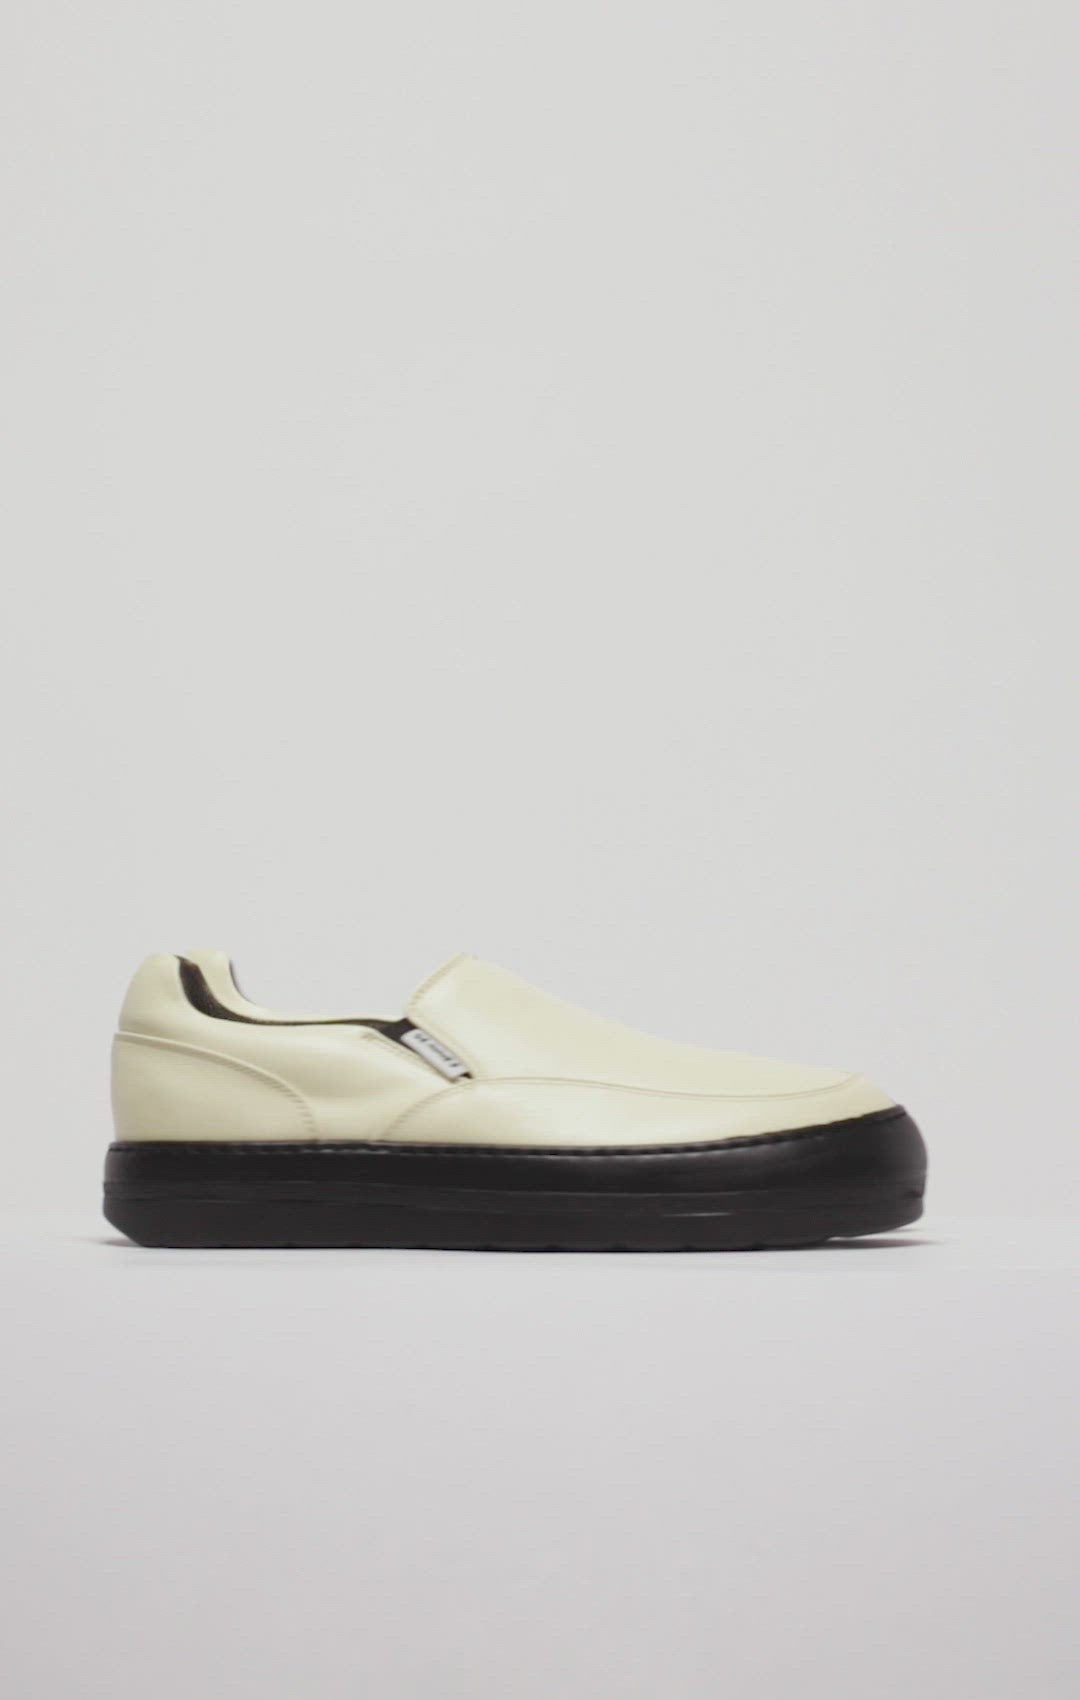 BANANA LEATHER DREAMY SLIP ON